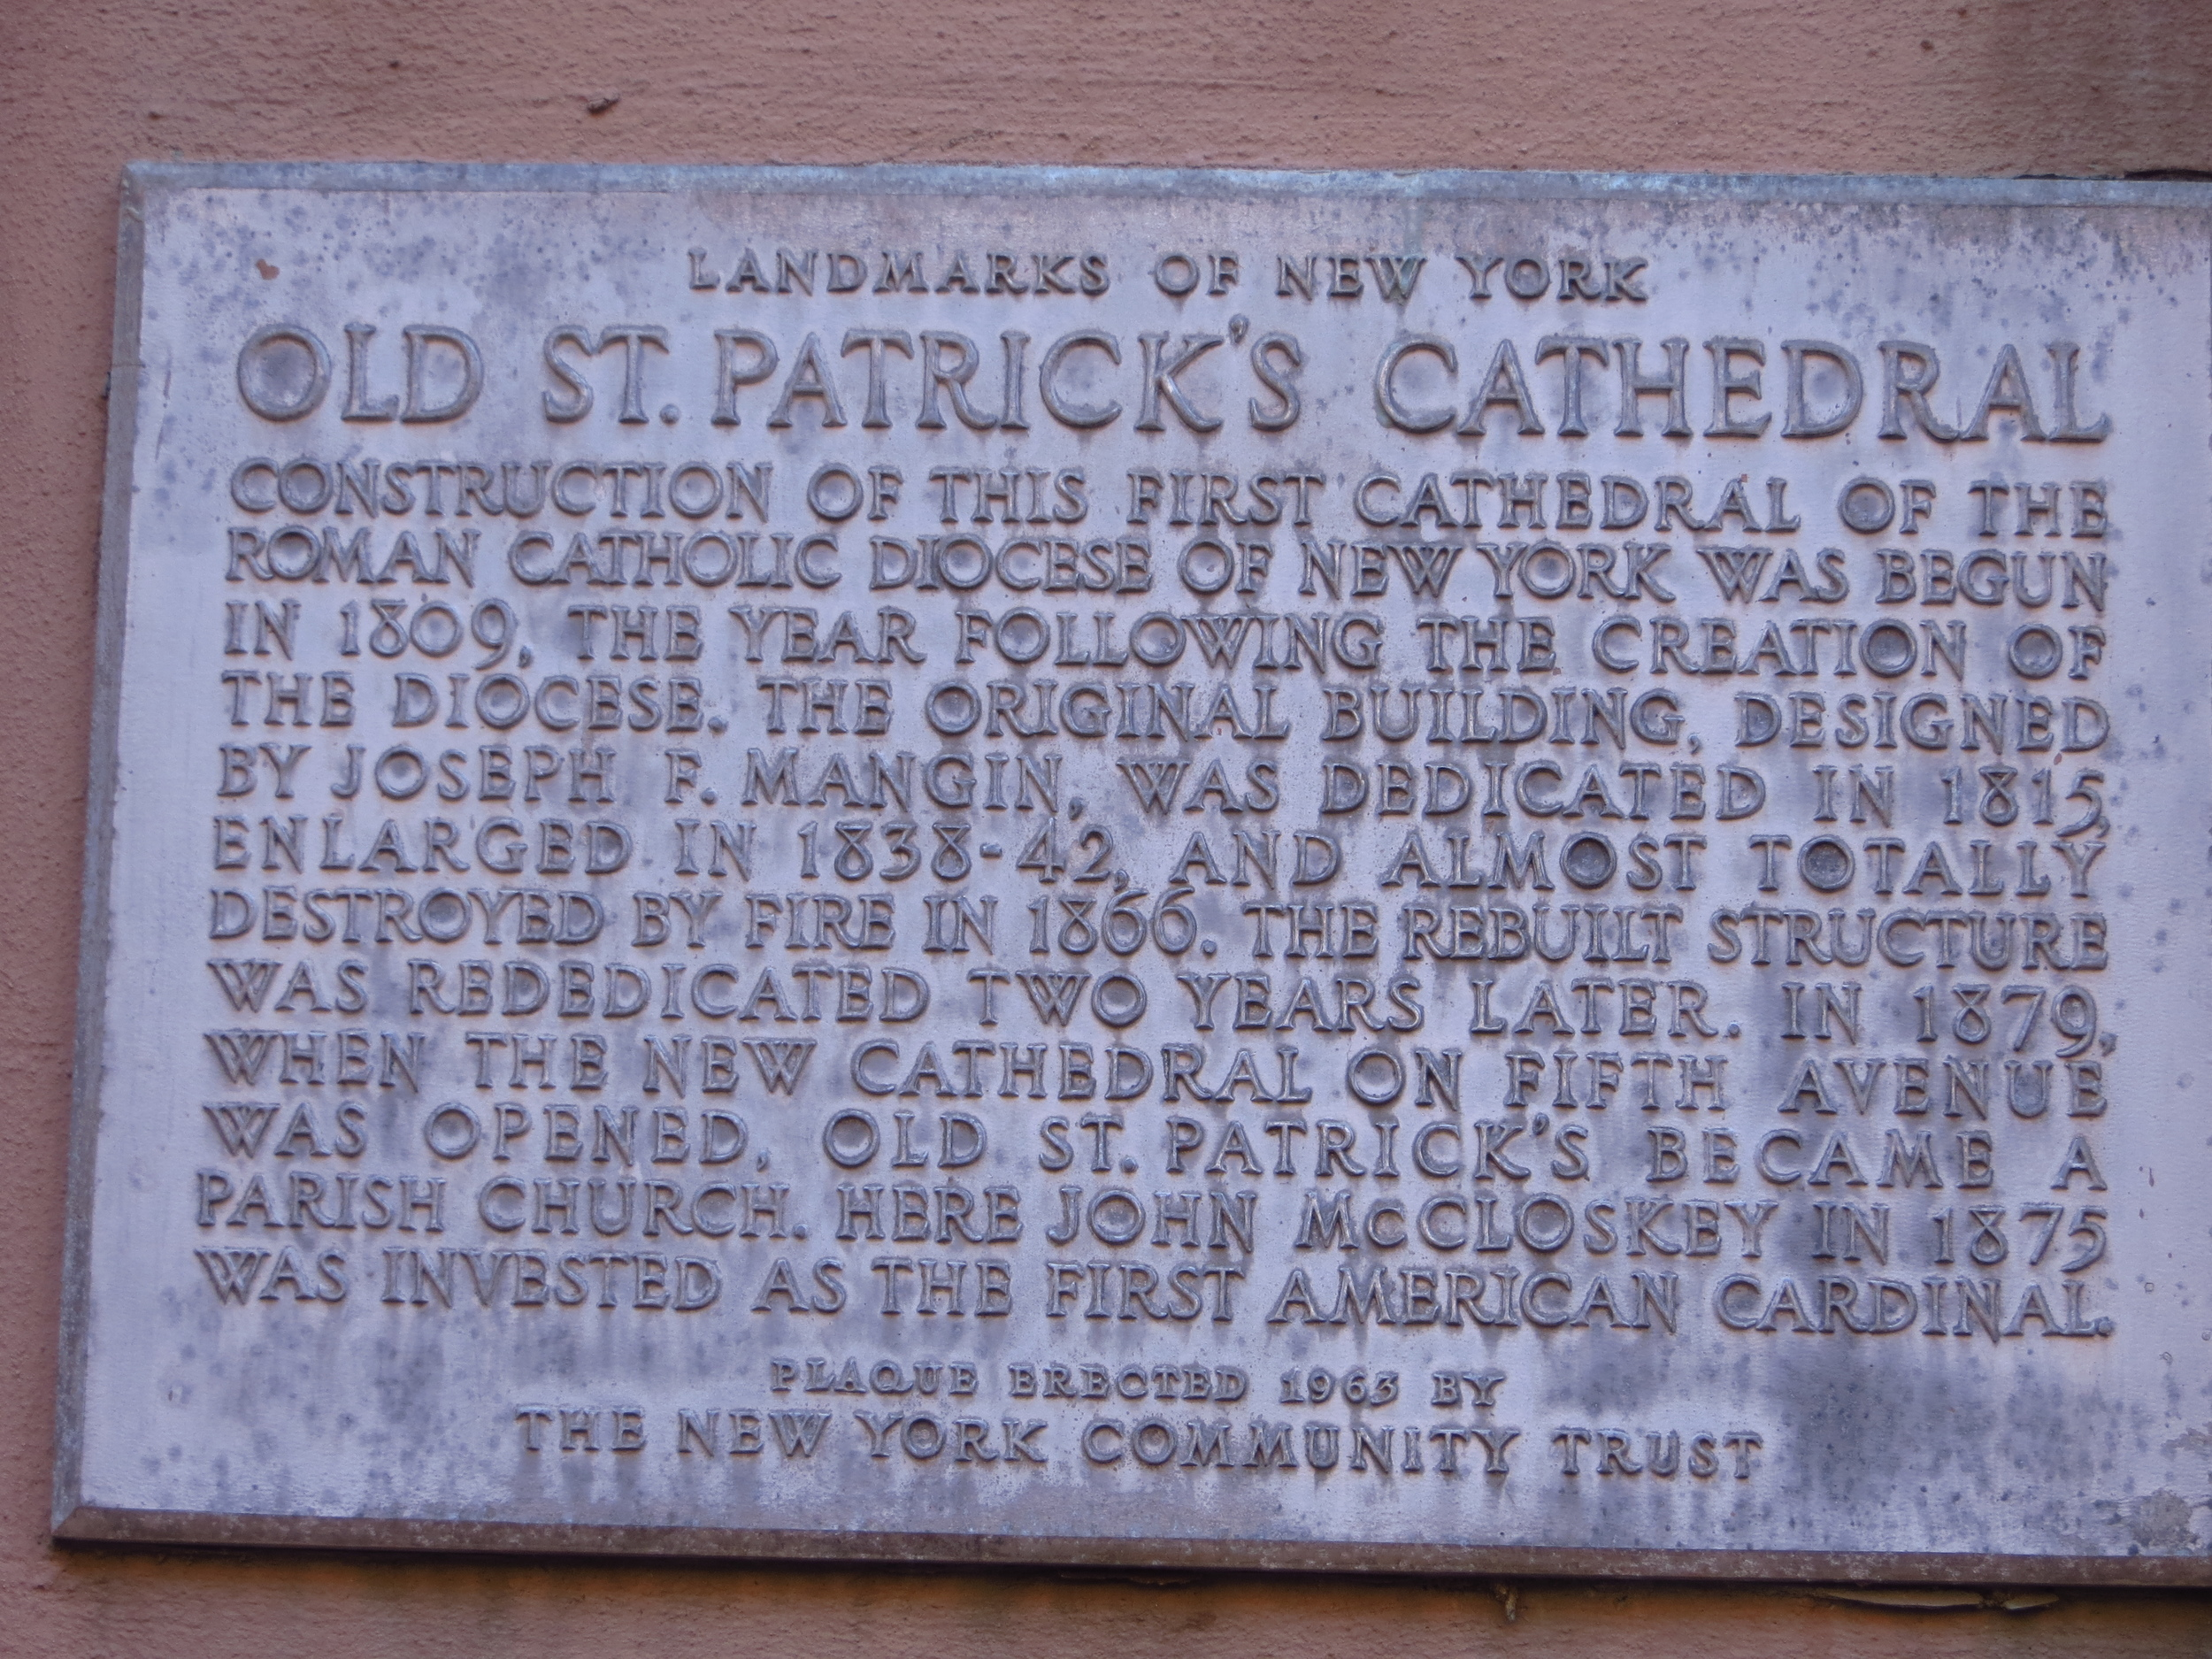 Old St. Patrick's Cathedral history